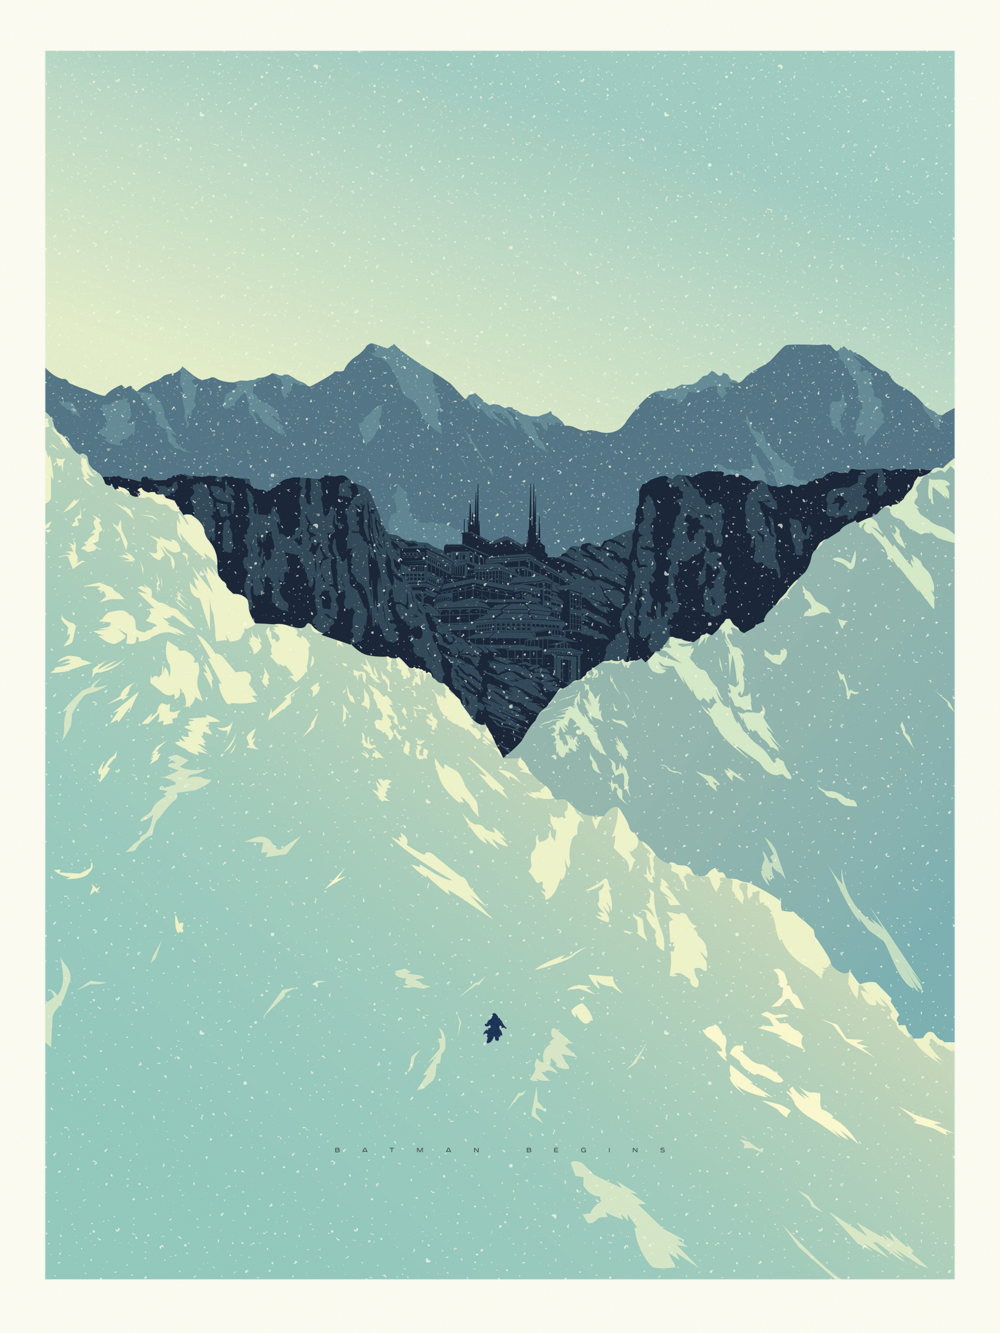 Batman Begins Poster (Recreation of a poster by Kevin Tong) | Adobe Illustrator